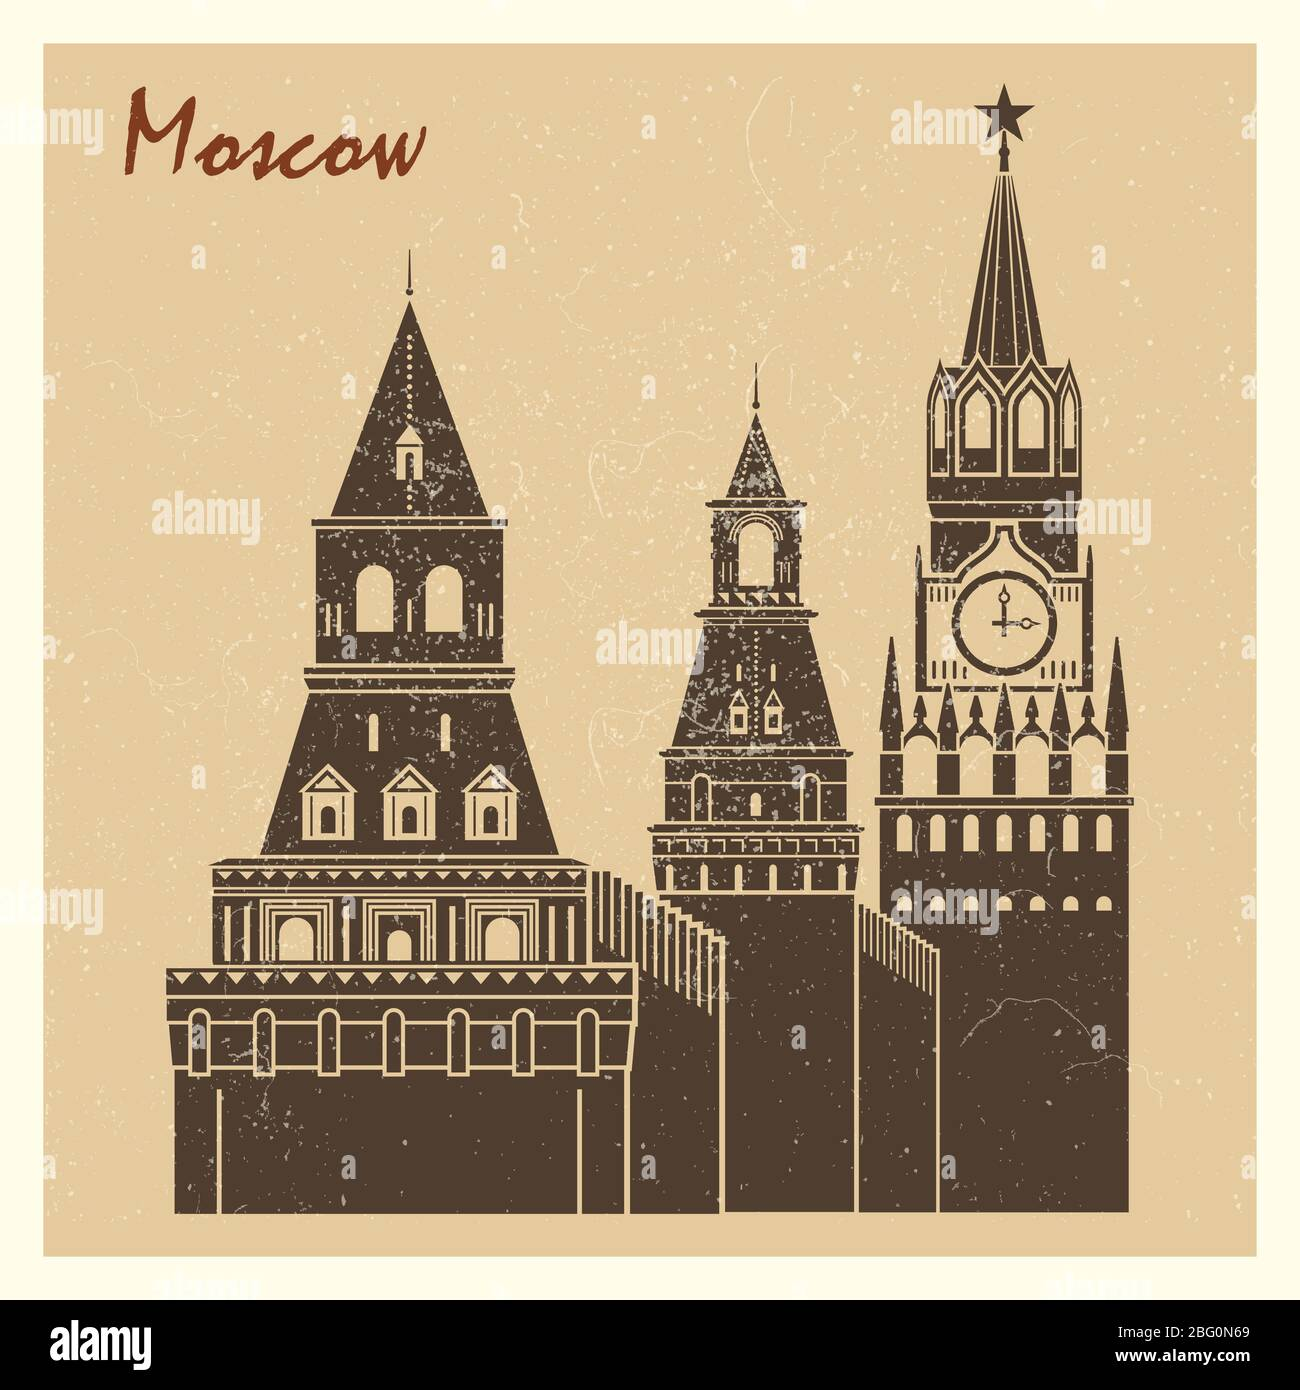 Far from Moscow 1940/'s Soviet vintage movie poster